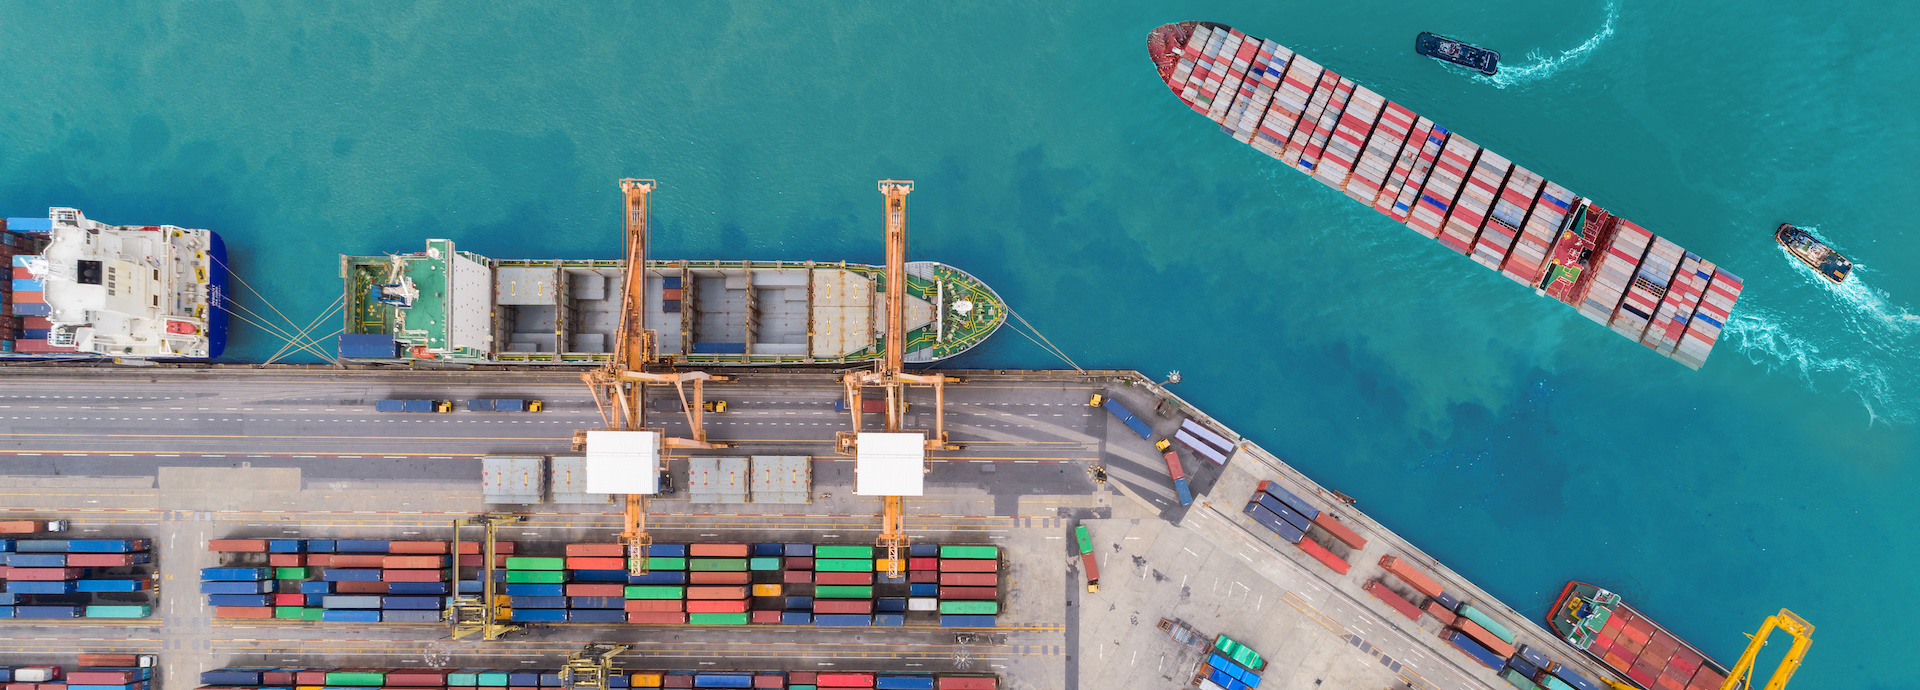 Aerial top view container ship at sea port and working crane bridge